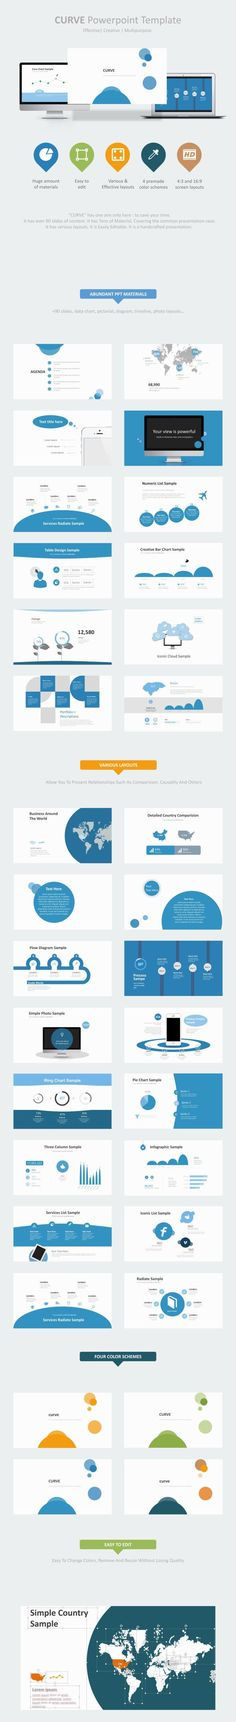 Curve Creative Multipurpose PowerPoint Template (PowerPoint Templates)